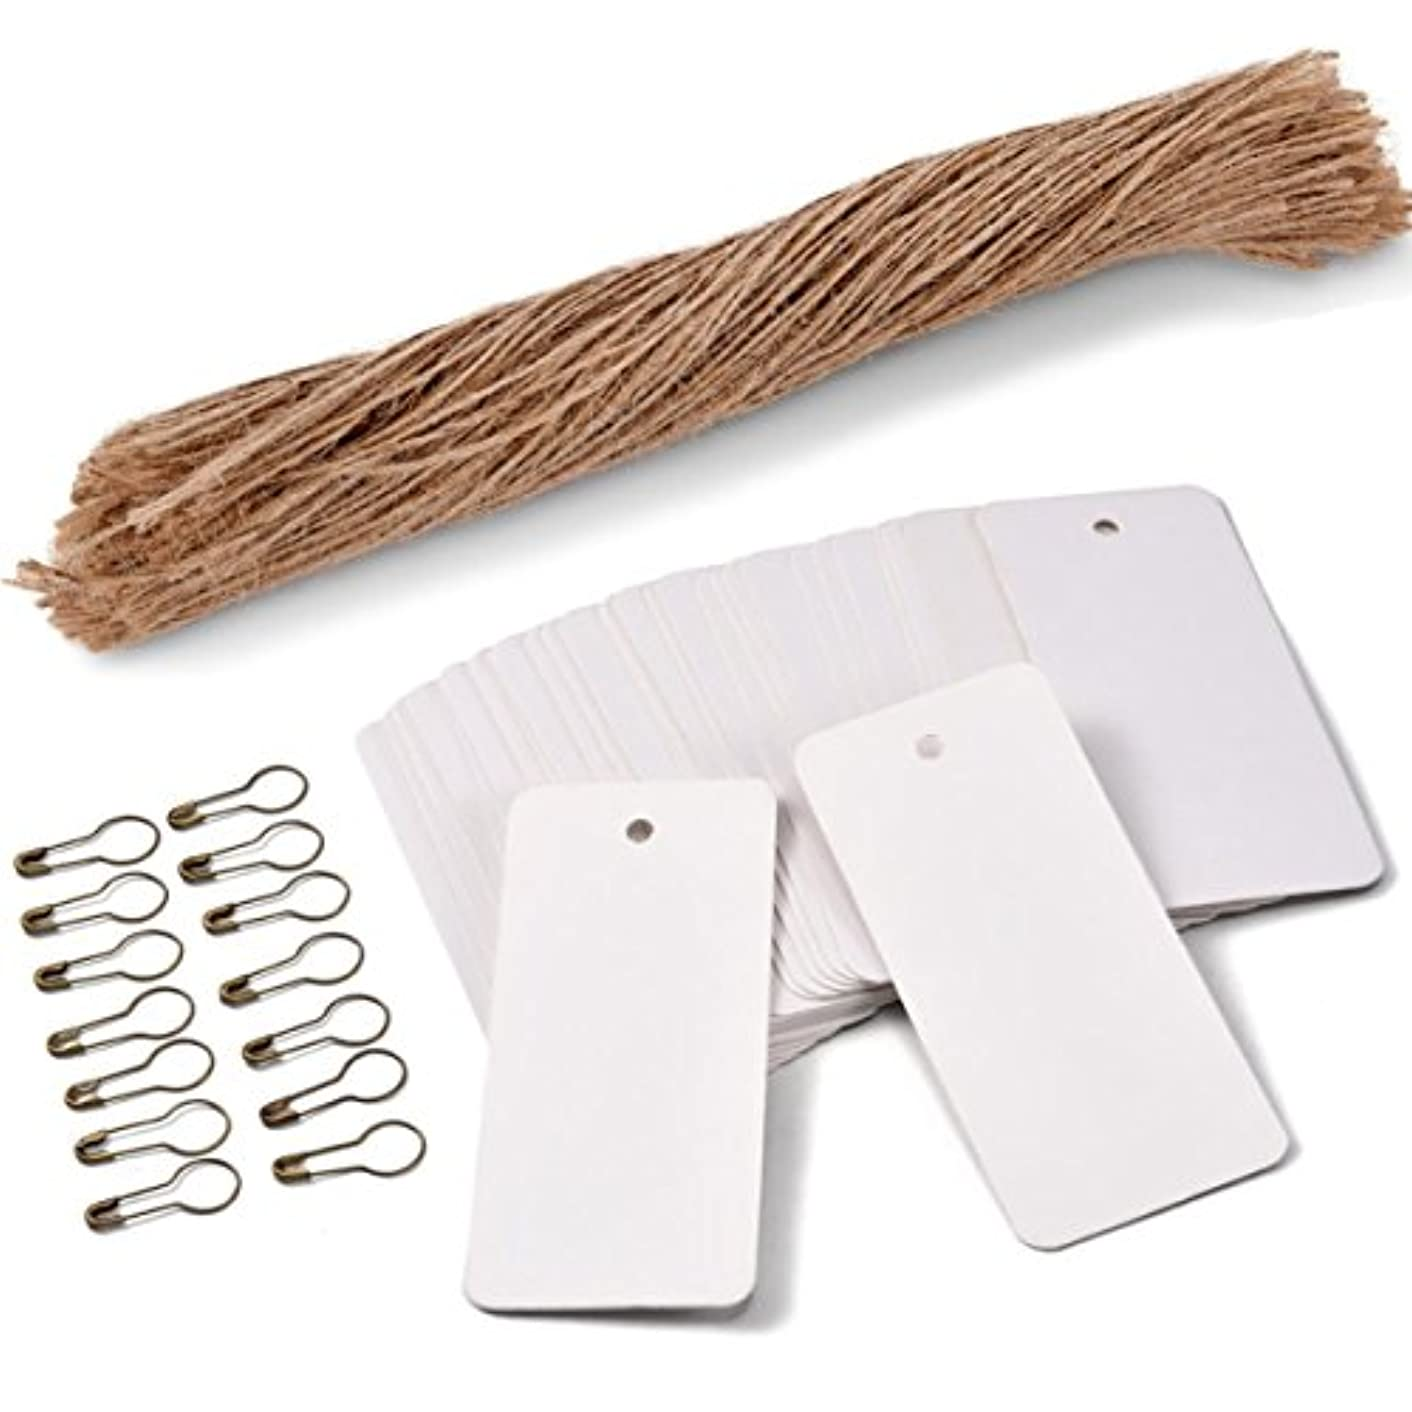 200 PCS Price Tags with Pre Cut Jute String and Safety Pins,LOOMY Printable Blank White Paper Tags for Sales Retail and Display